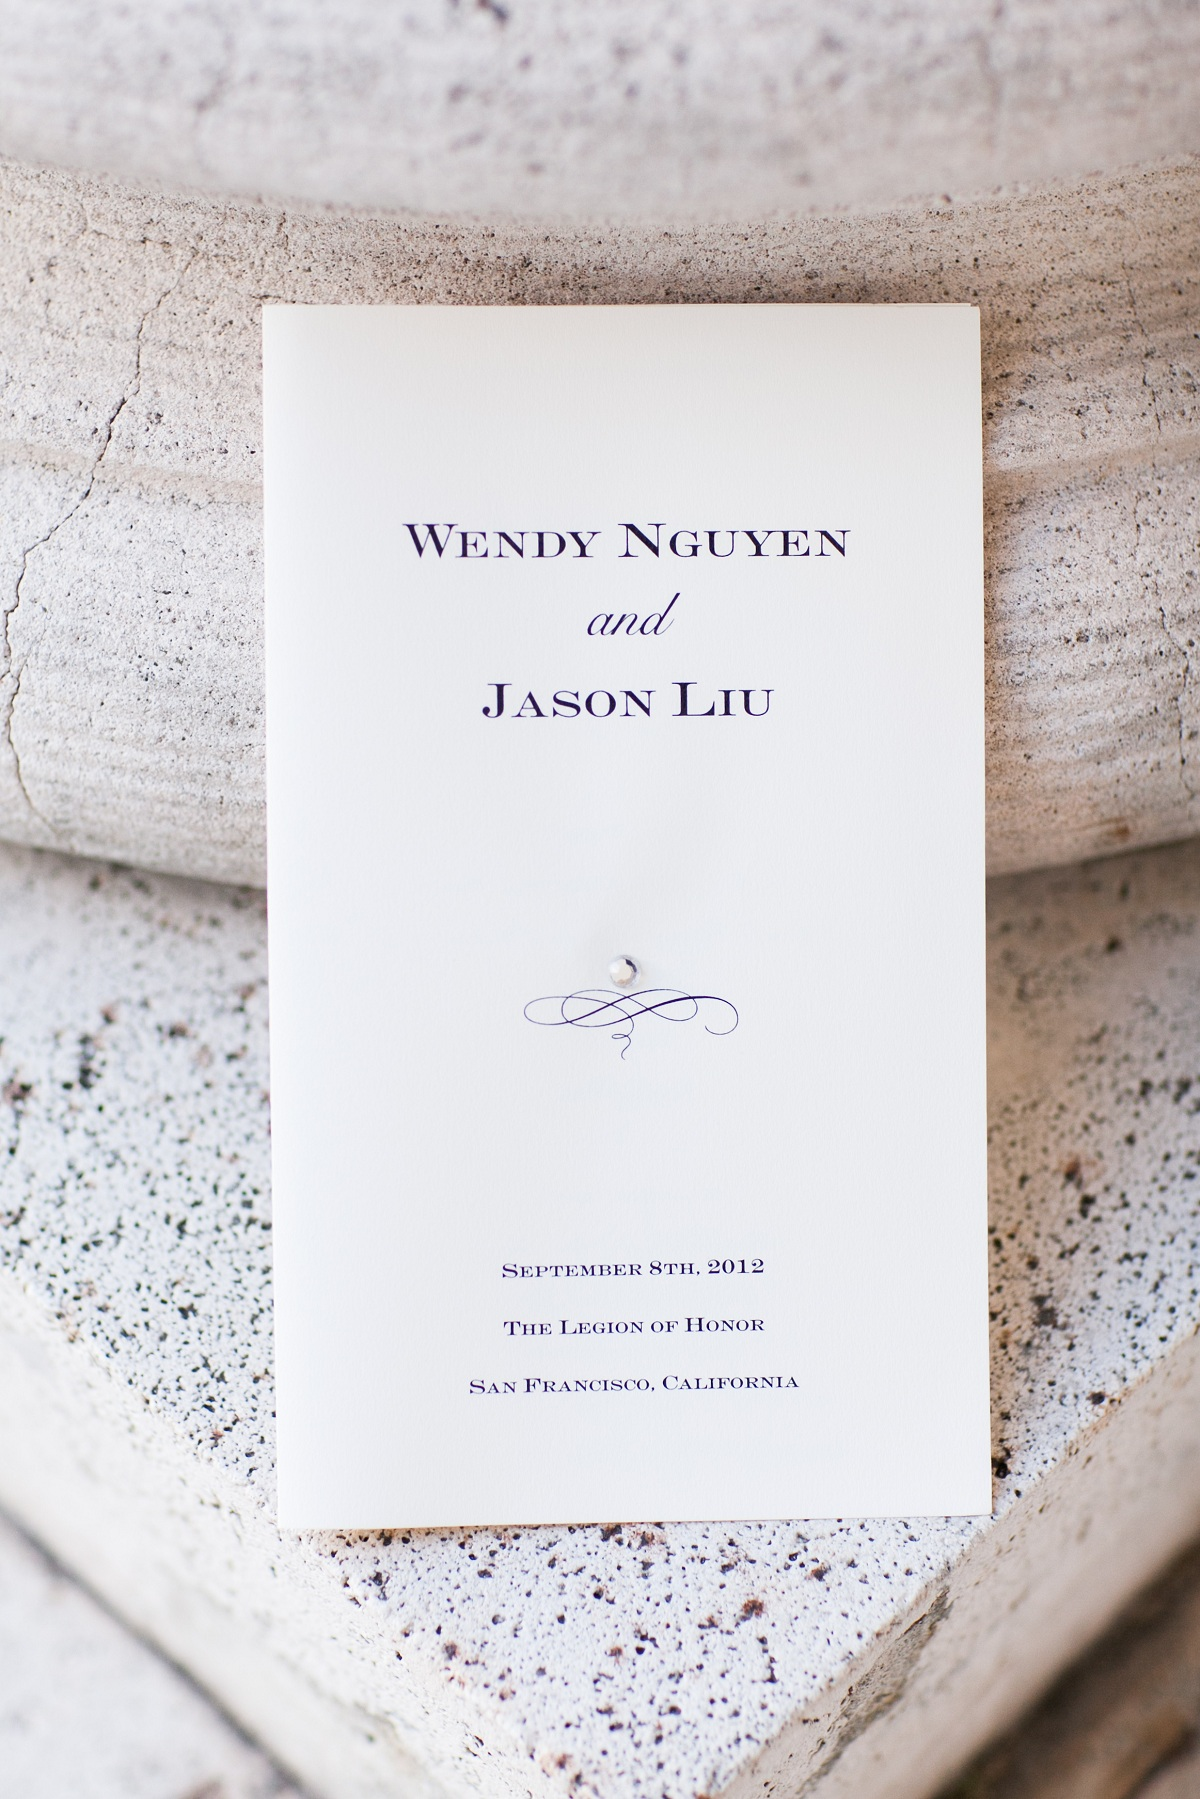 Stationery, Real Weddings, red, Ceremony Programs, Fall Weddings, West Coast Real Weddings, Fall Real Weddings, Wedding program, Crimson, West Coast Weddings, Romantic Real Weddings, Glamorous Real Weddings, Glamorous Weddings, Romantic Real Wedding